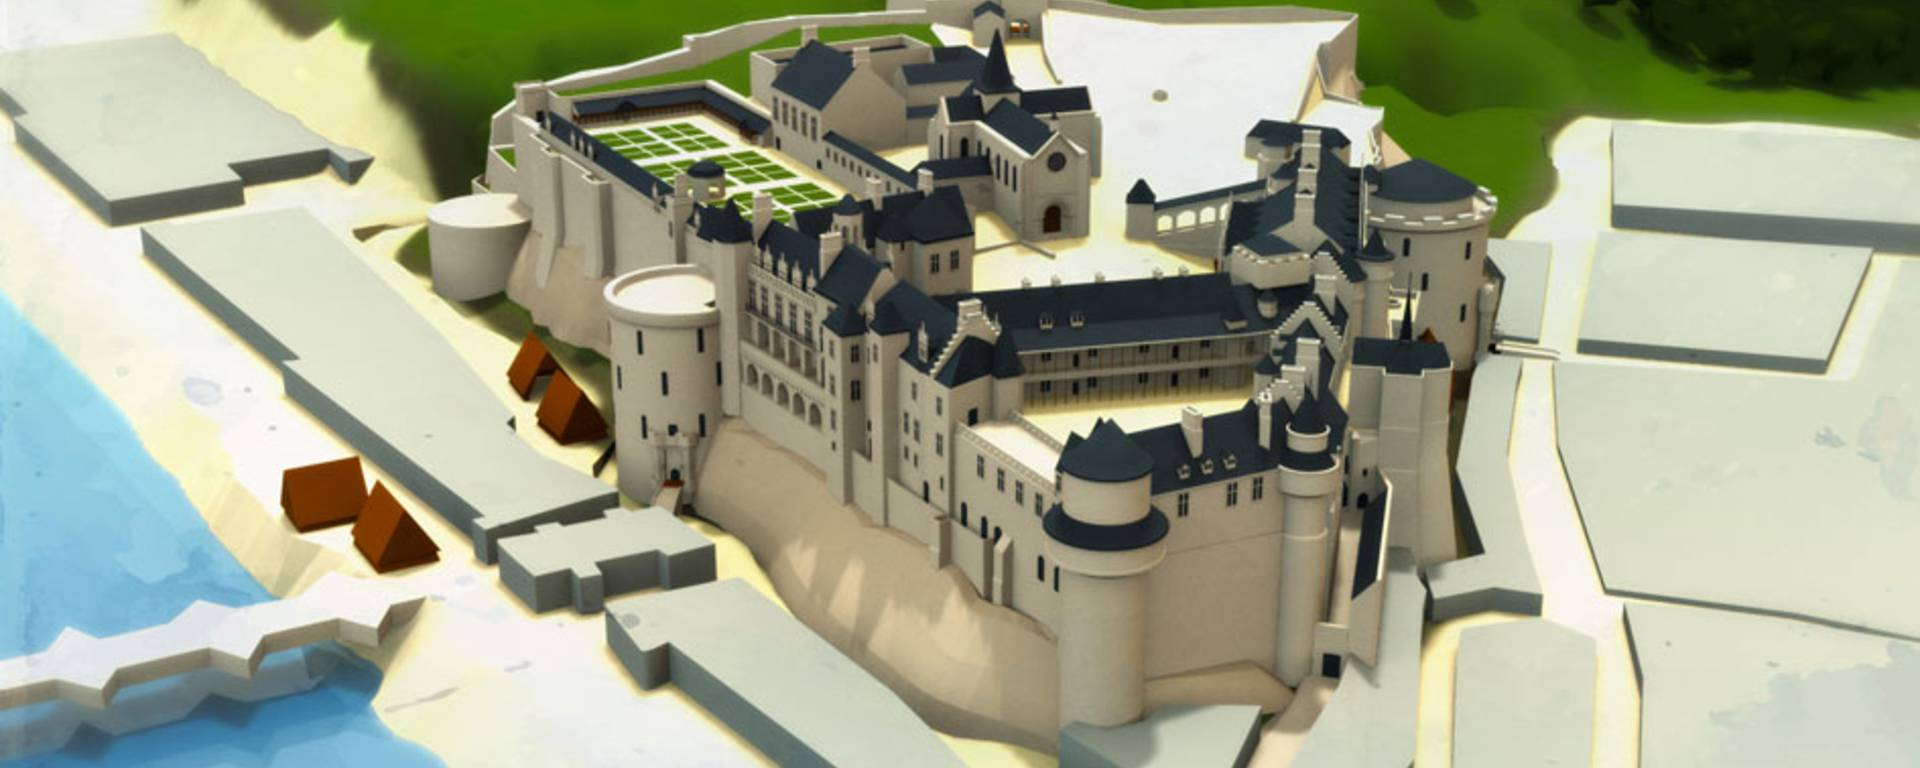 The château at the time of Charles VIII